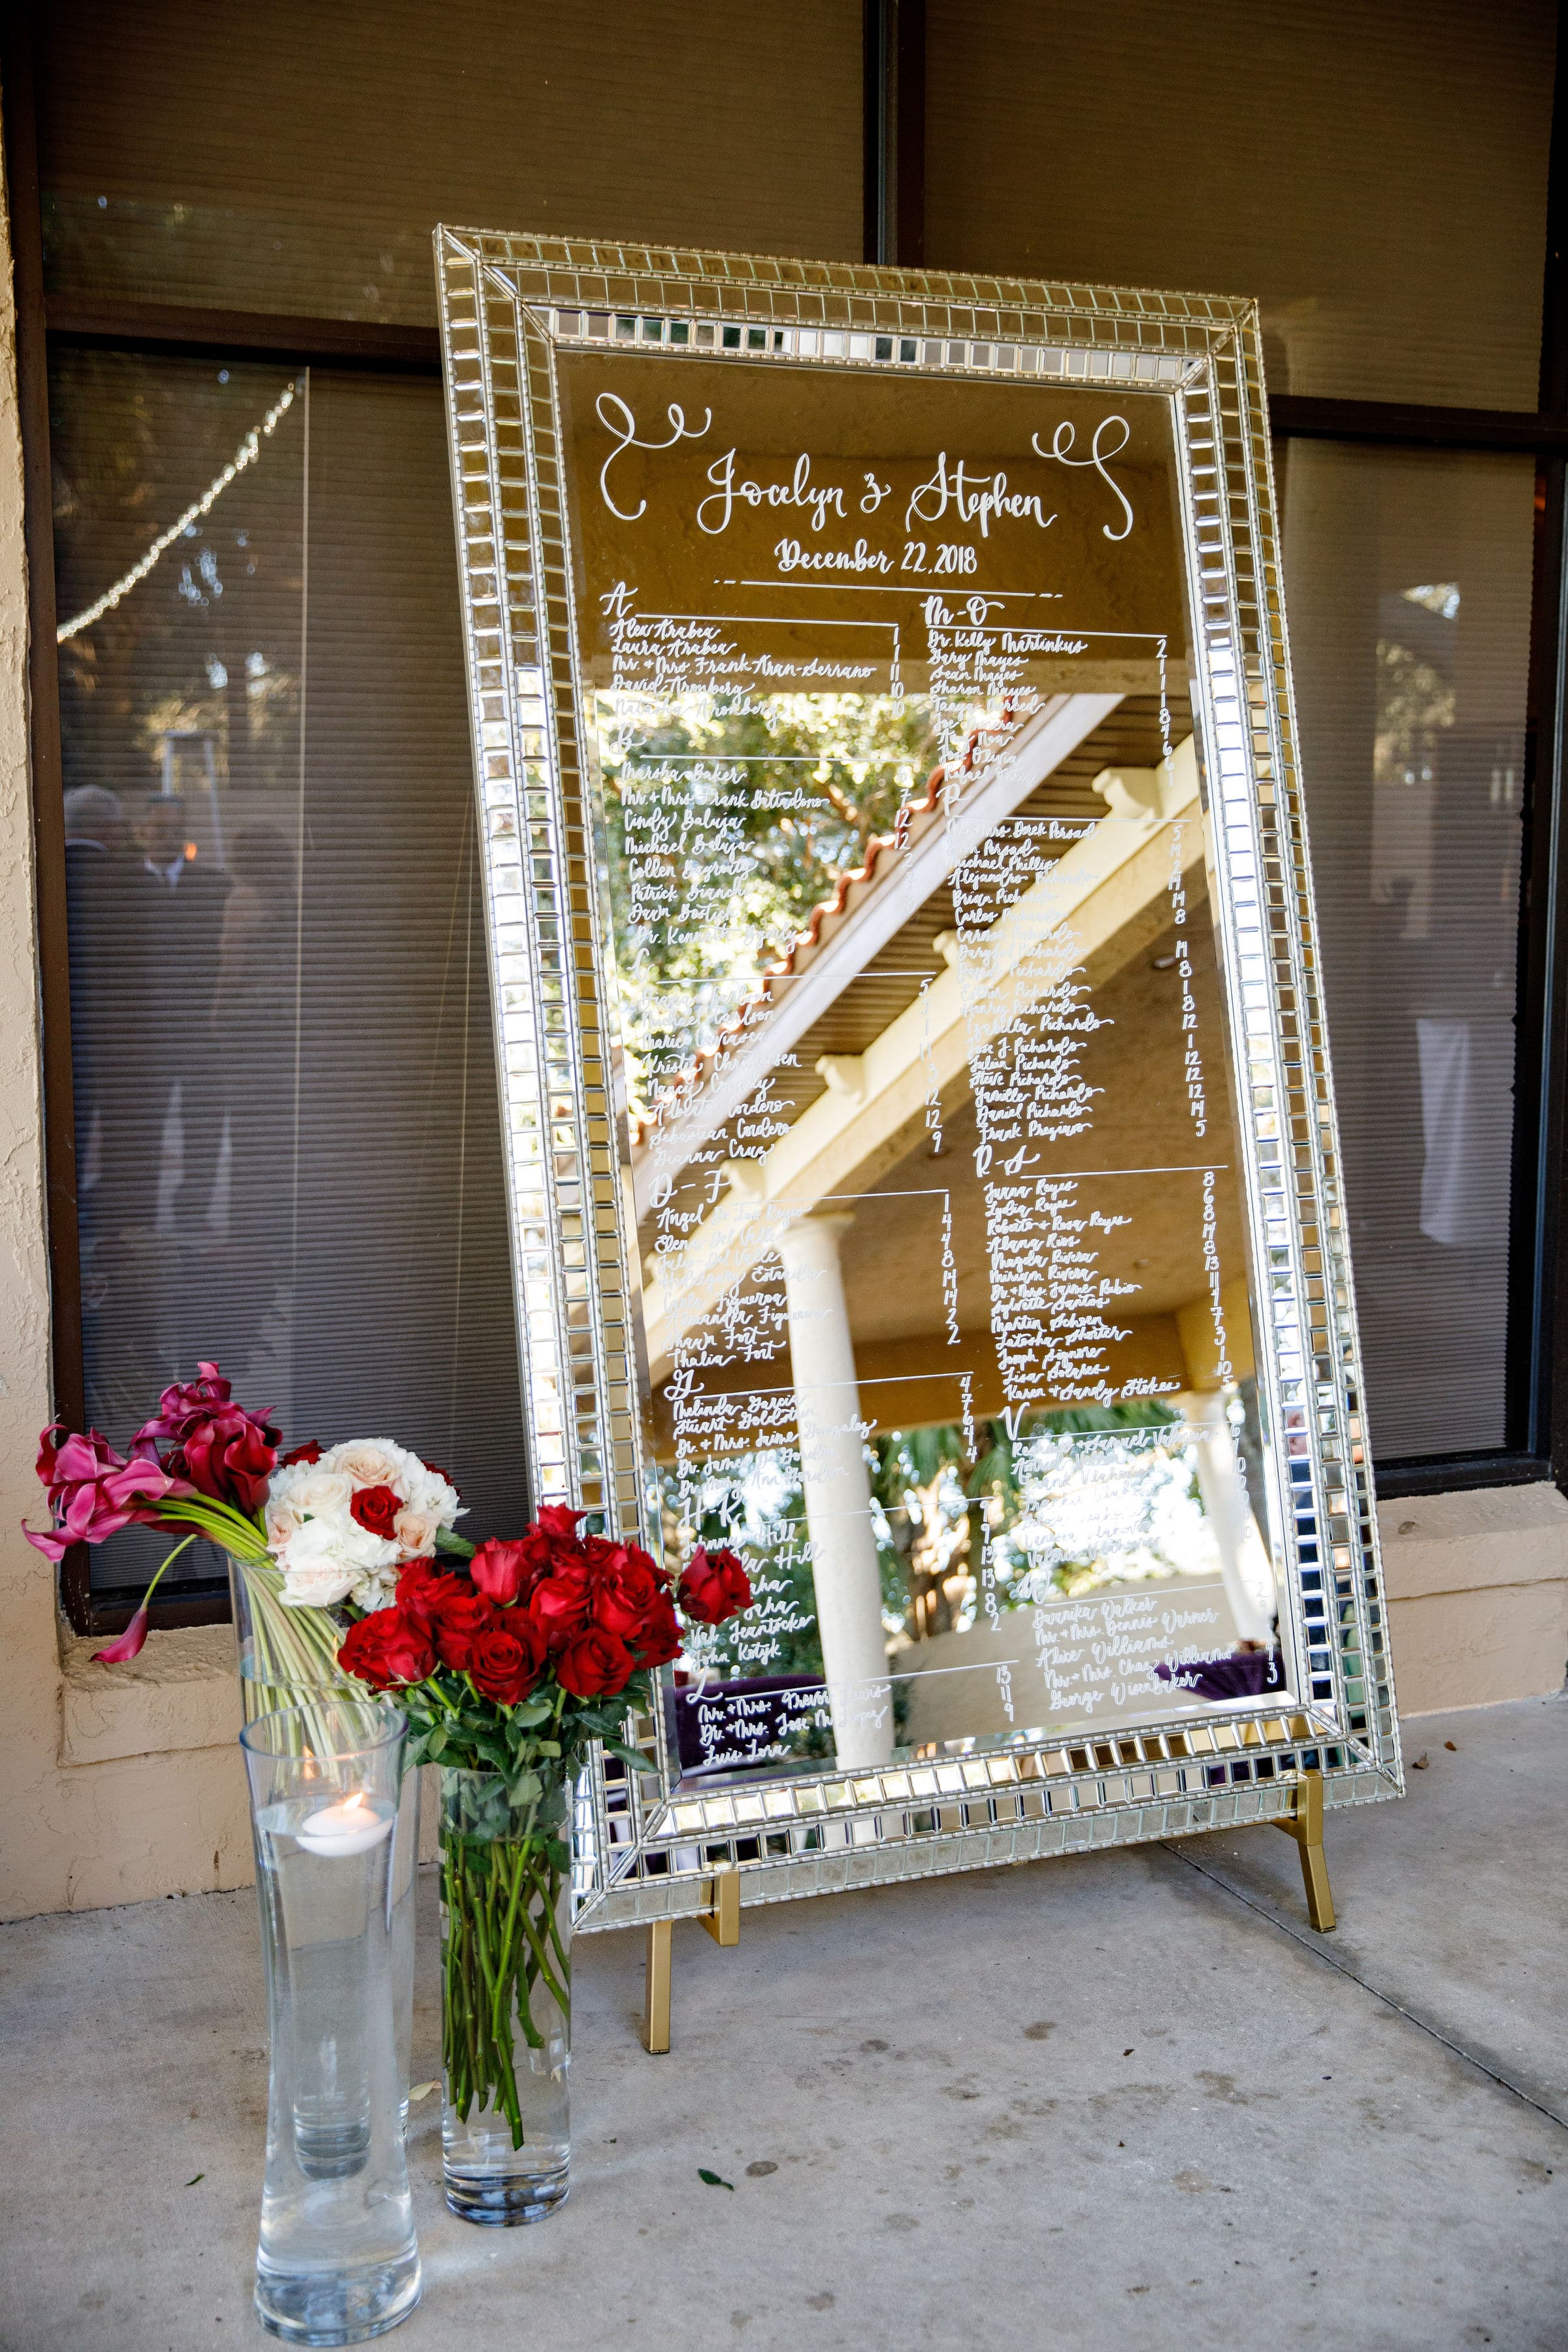 8ft silver mirror with names on it and fresh floral